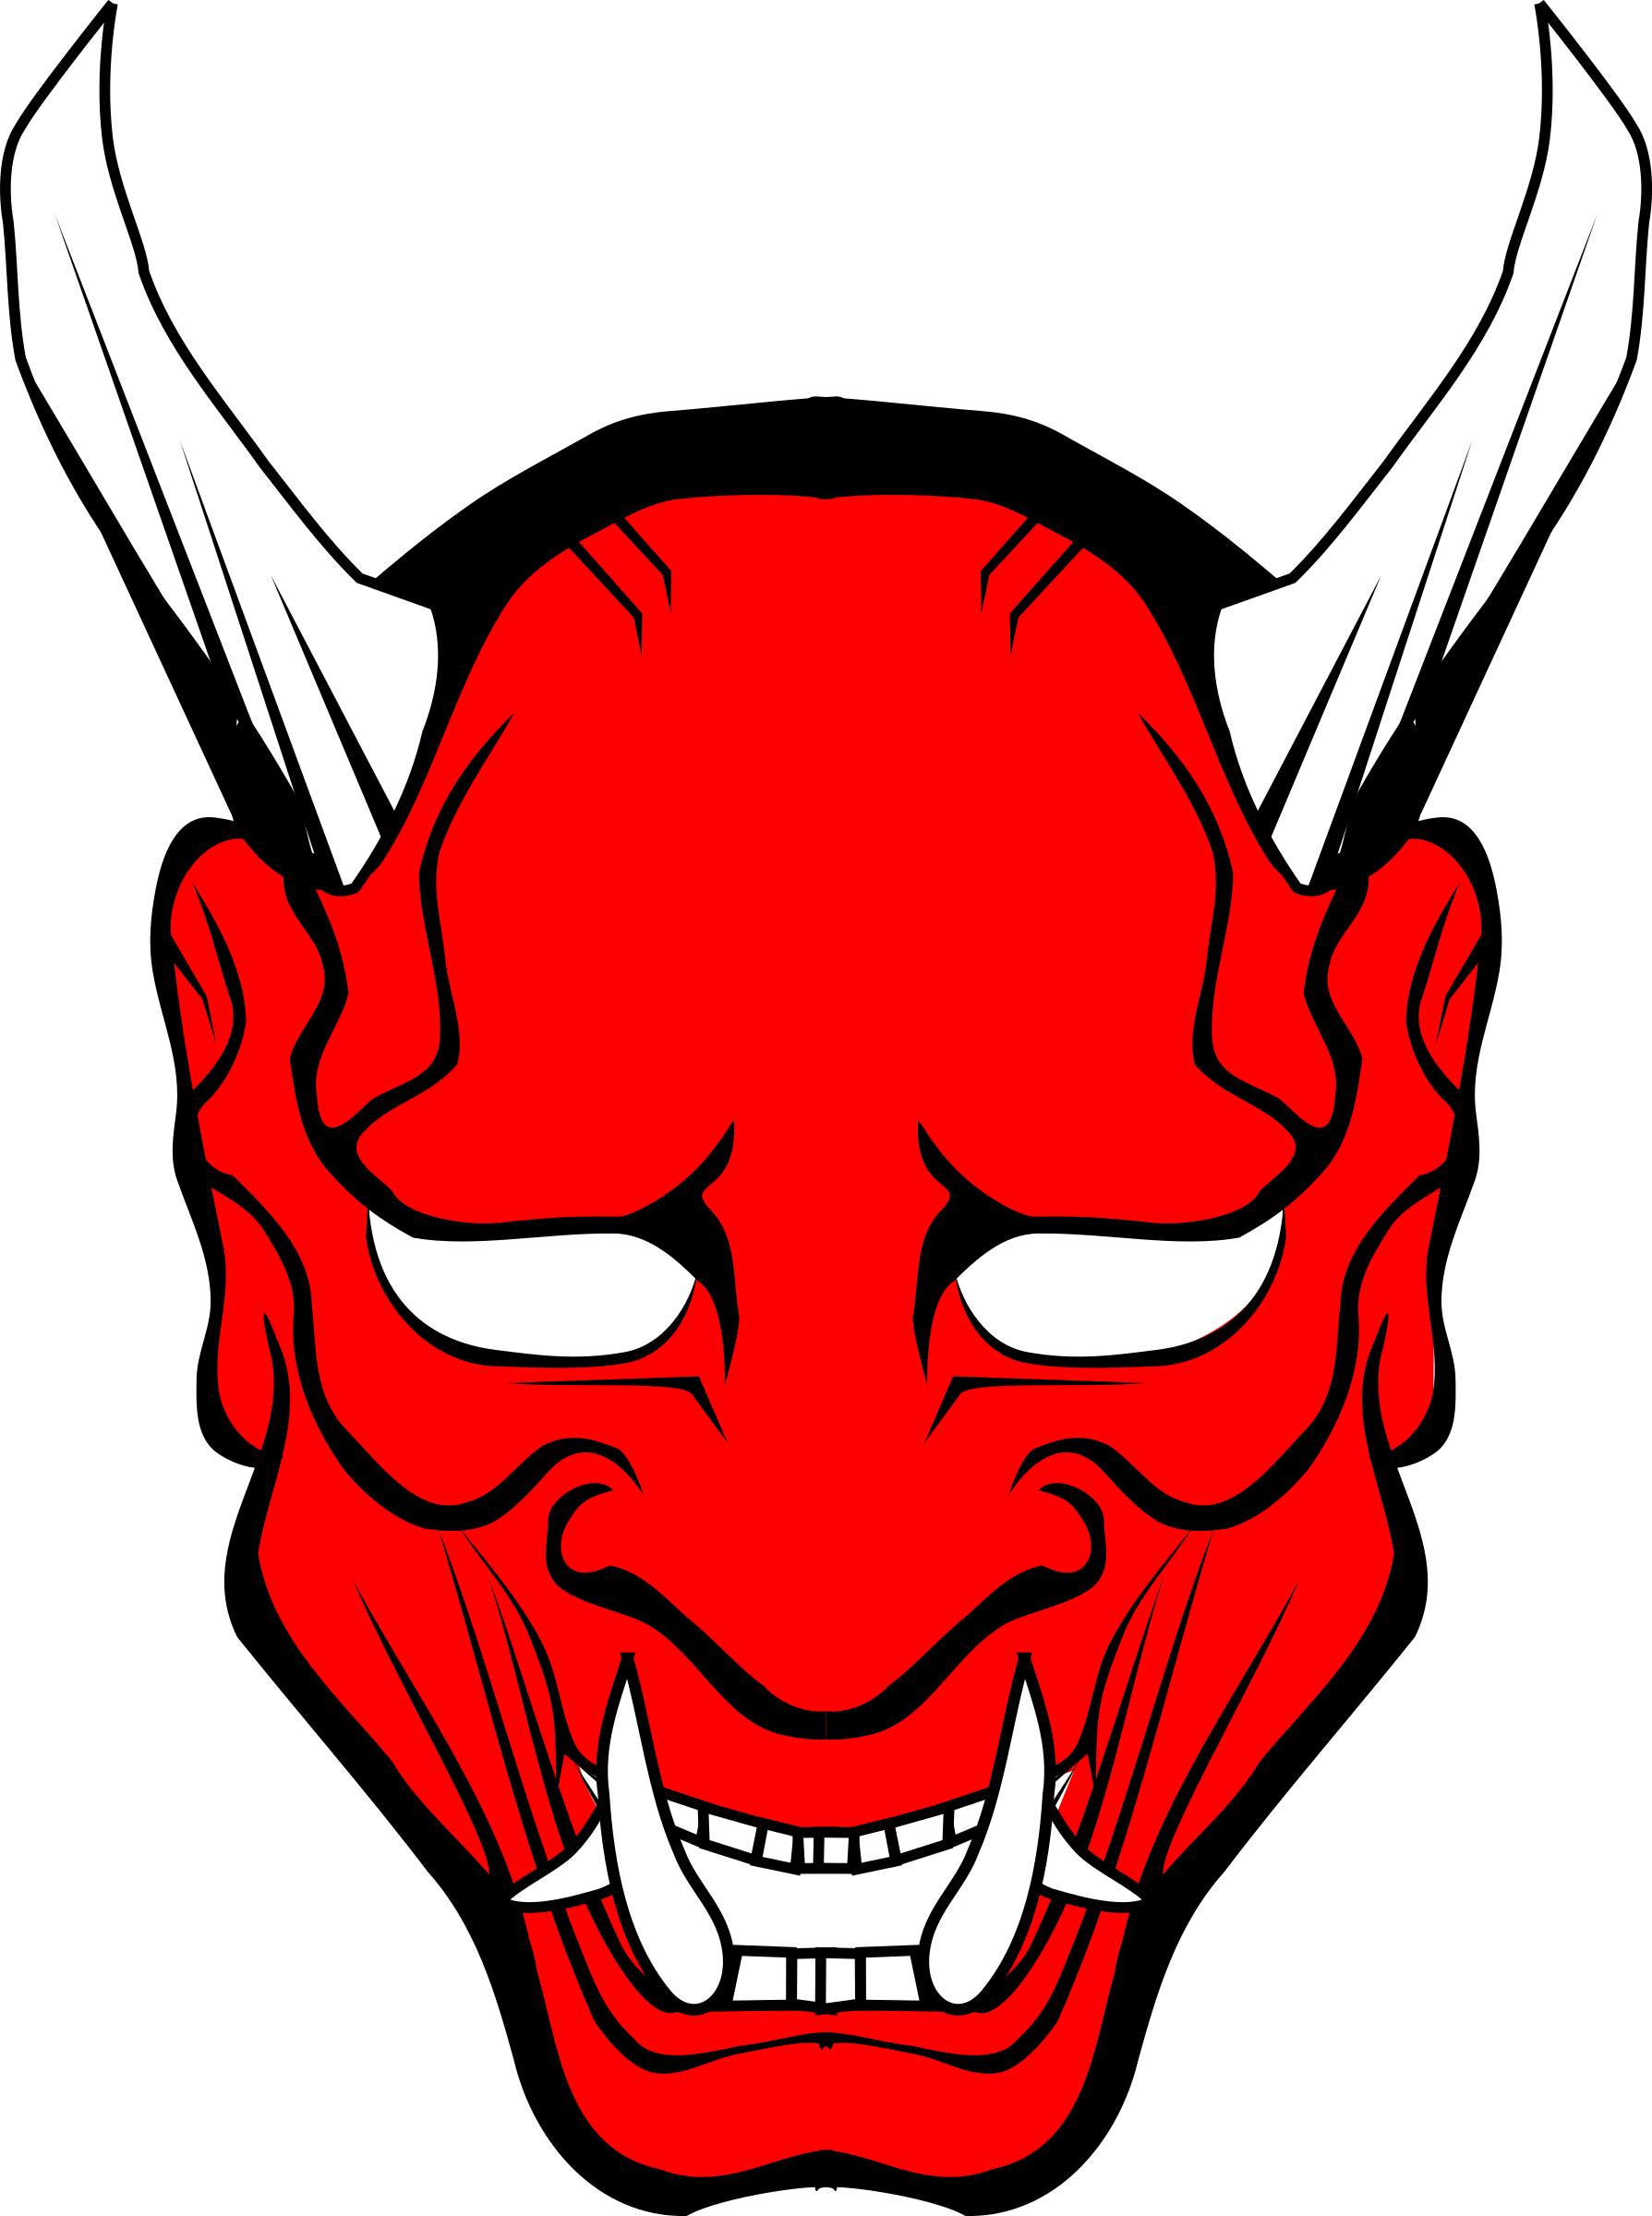 oni mask red  by stilg4r